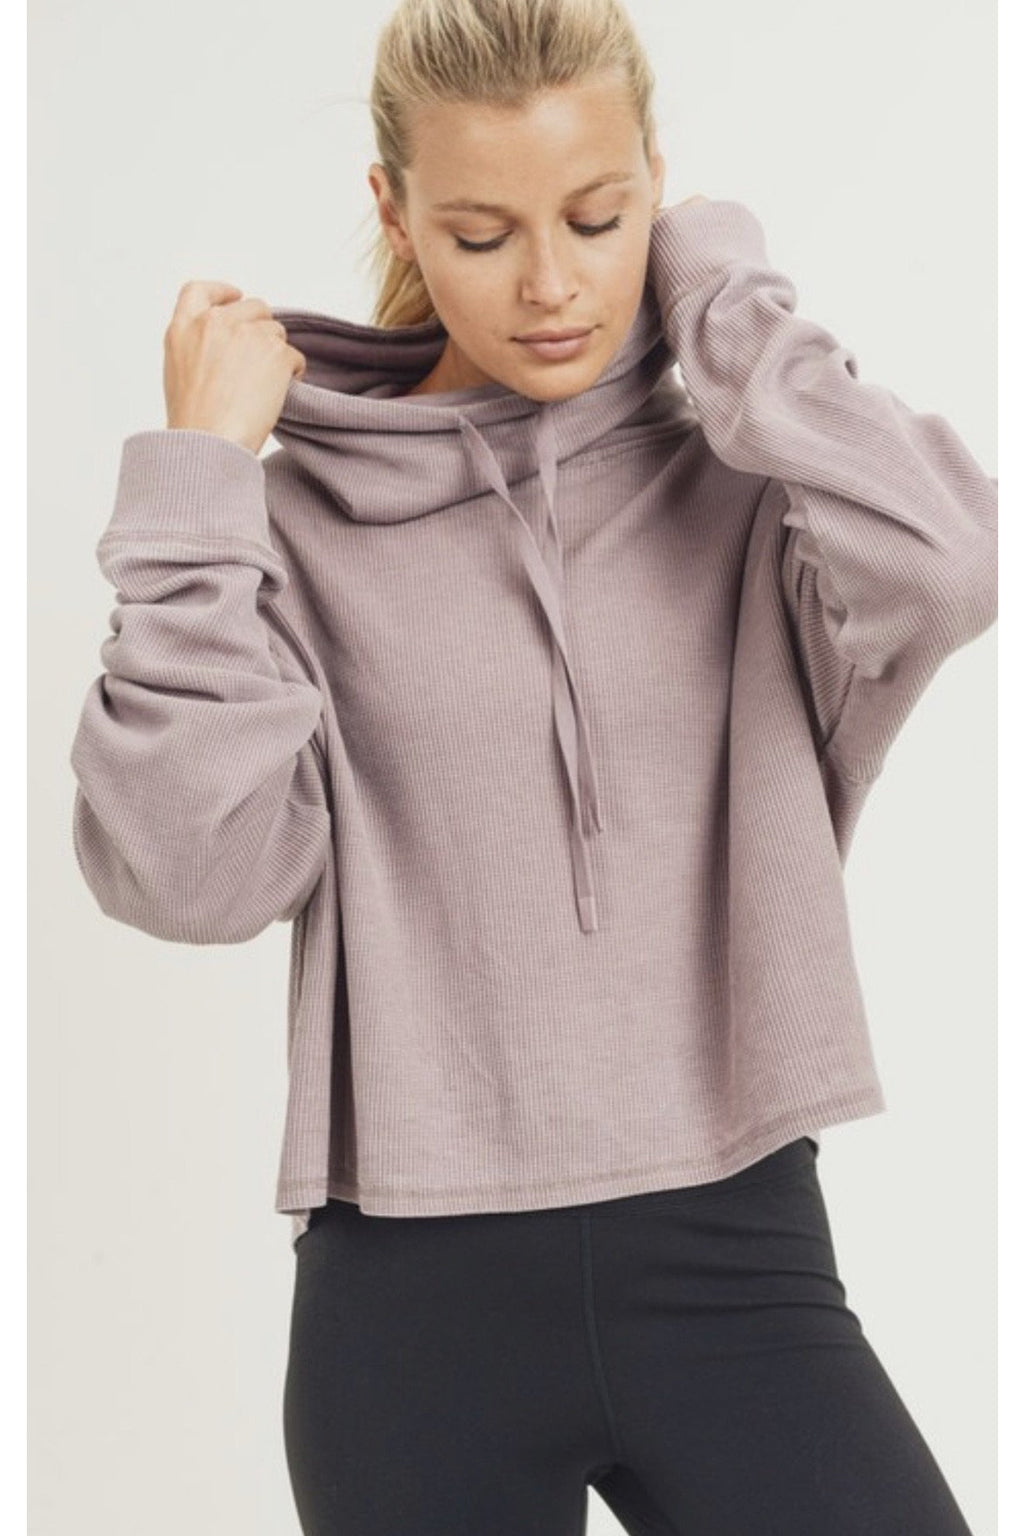 Kendra Cropped Sweatshirt $38